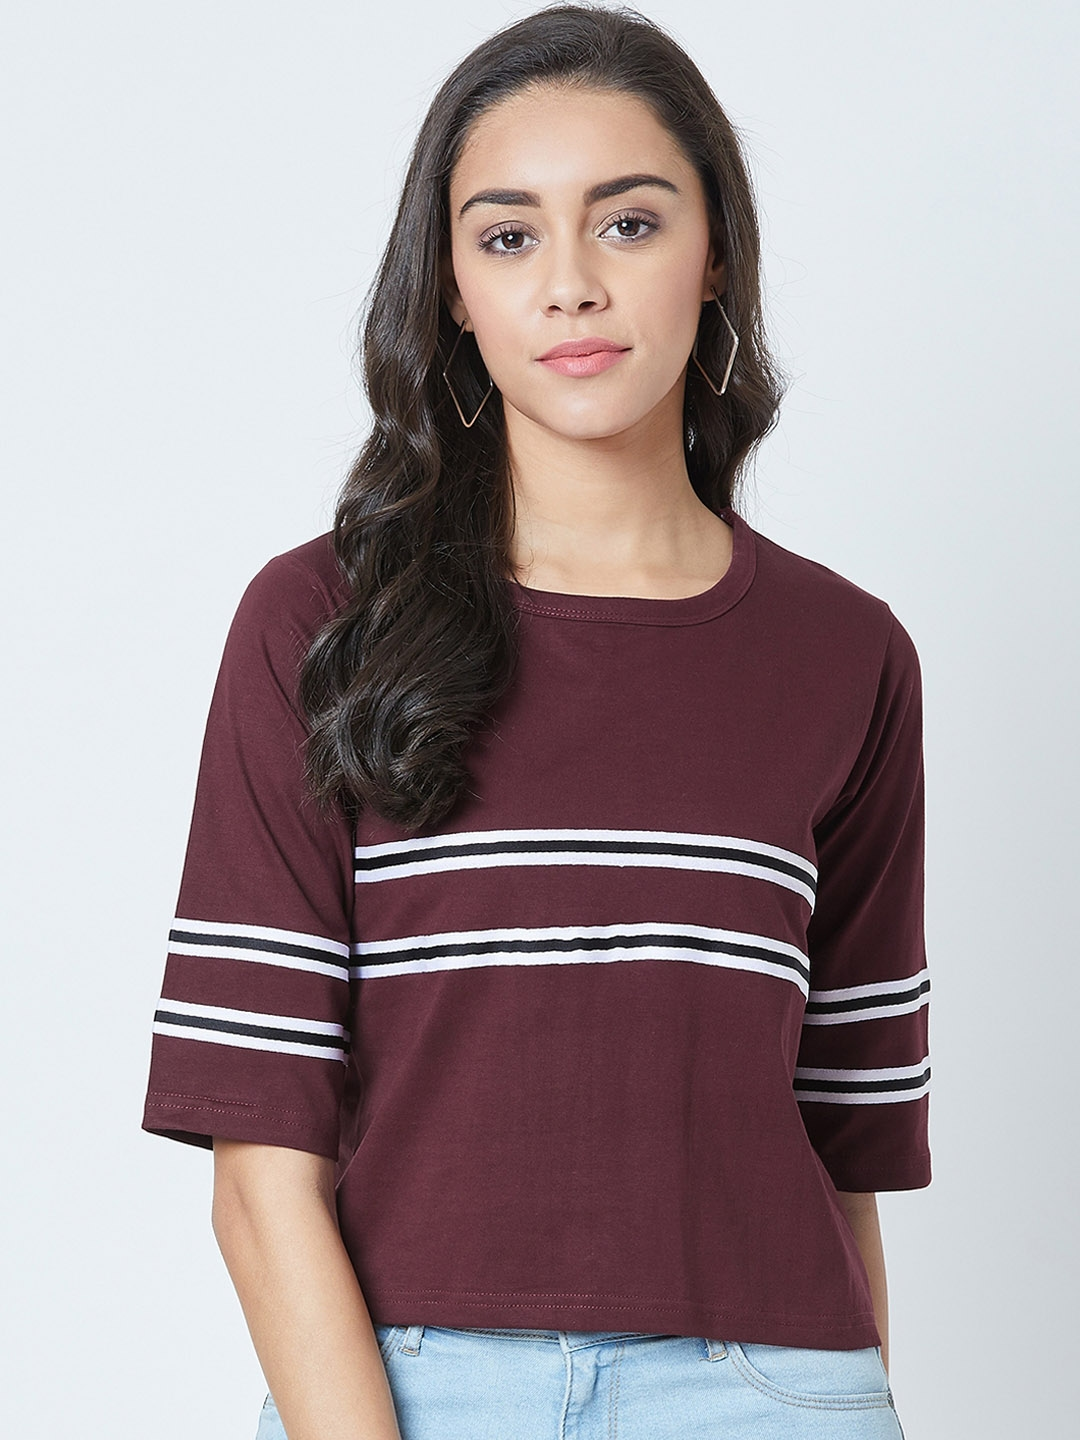 The Dry State Women Maroon Striped Round Neck T shirt